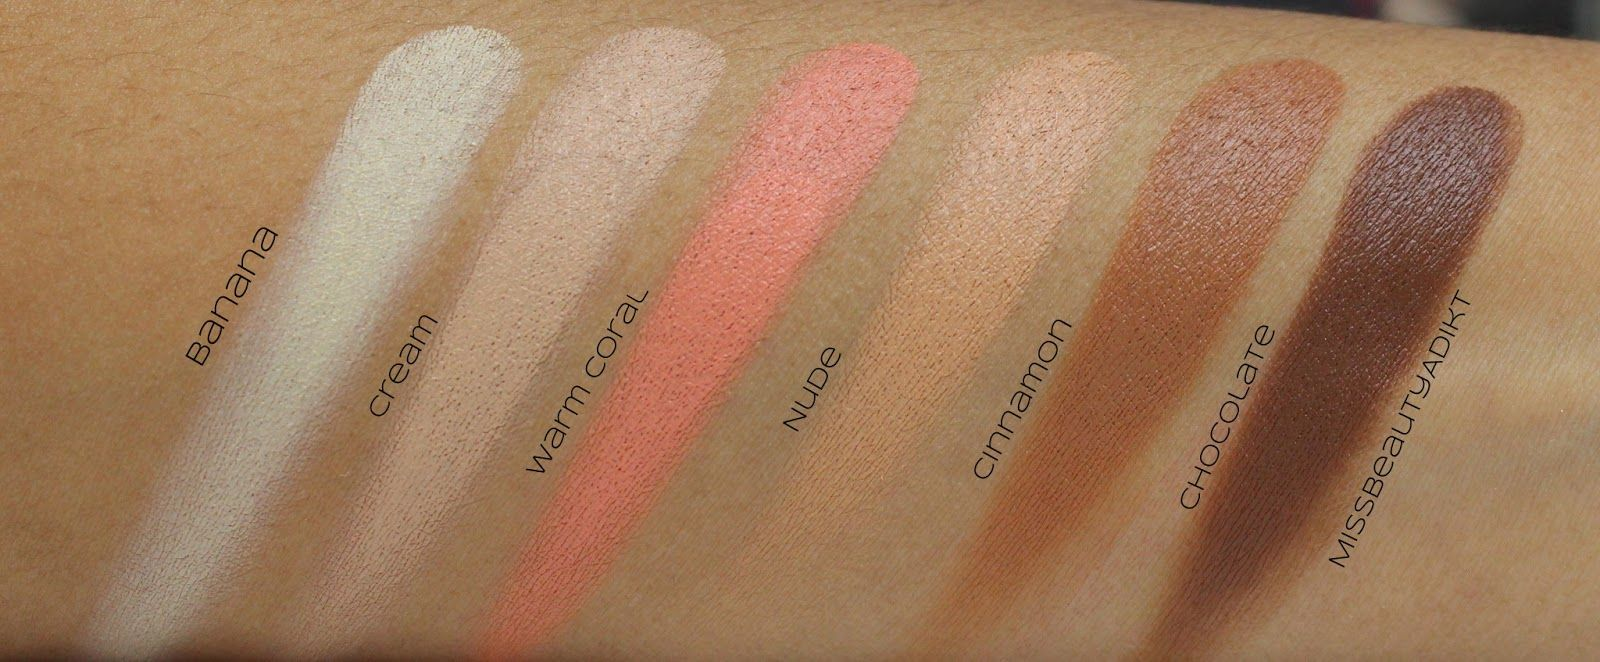 Contour Cream Kit - Light by Anastasia Beverly Hills #7